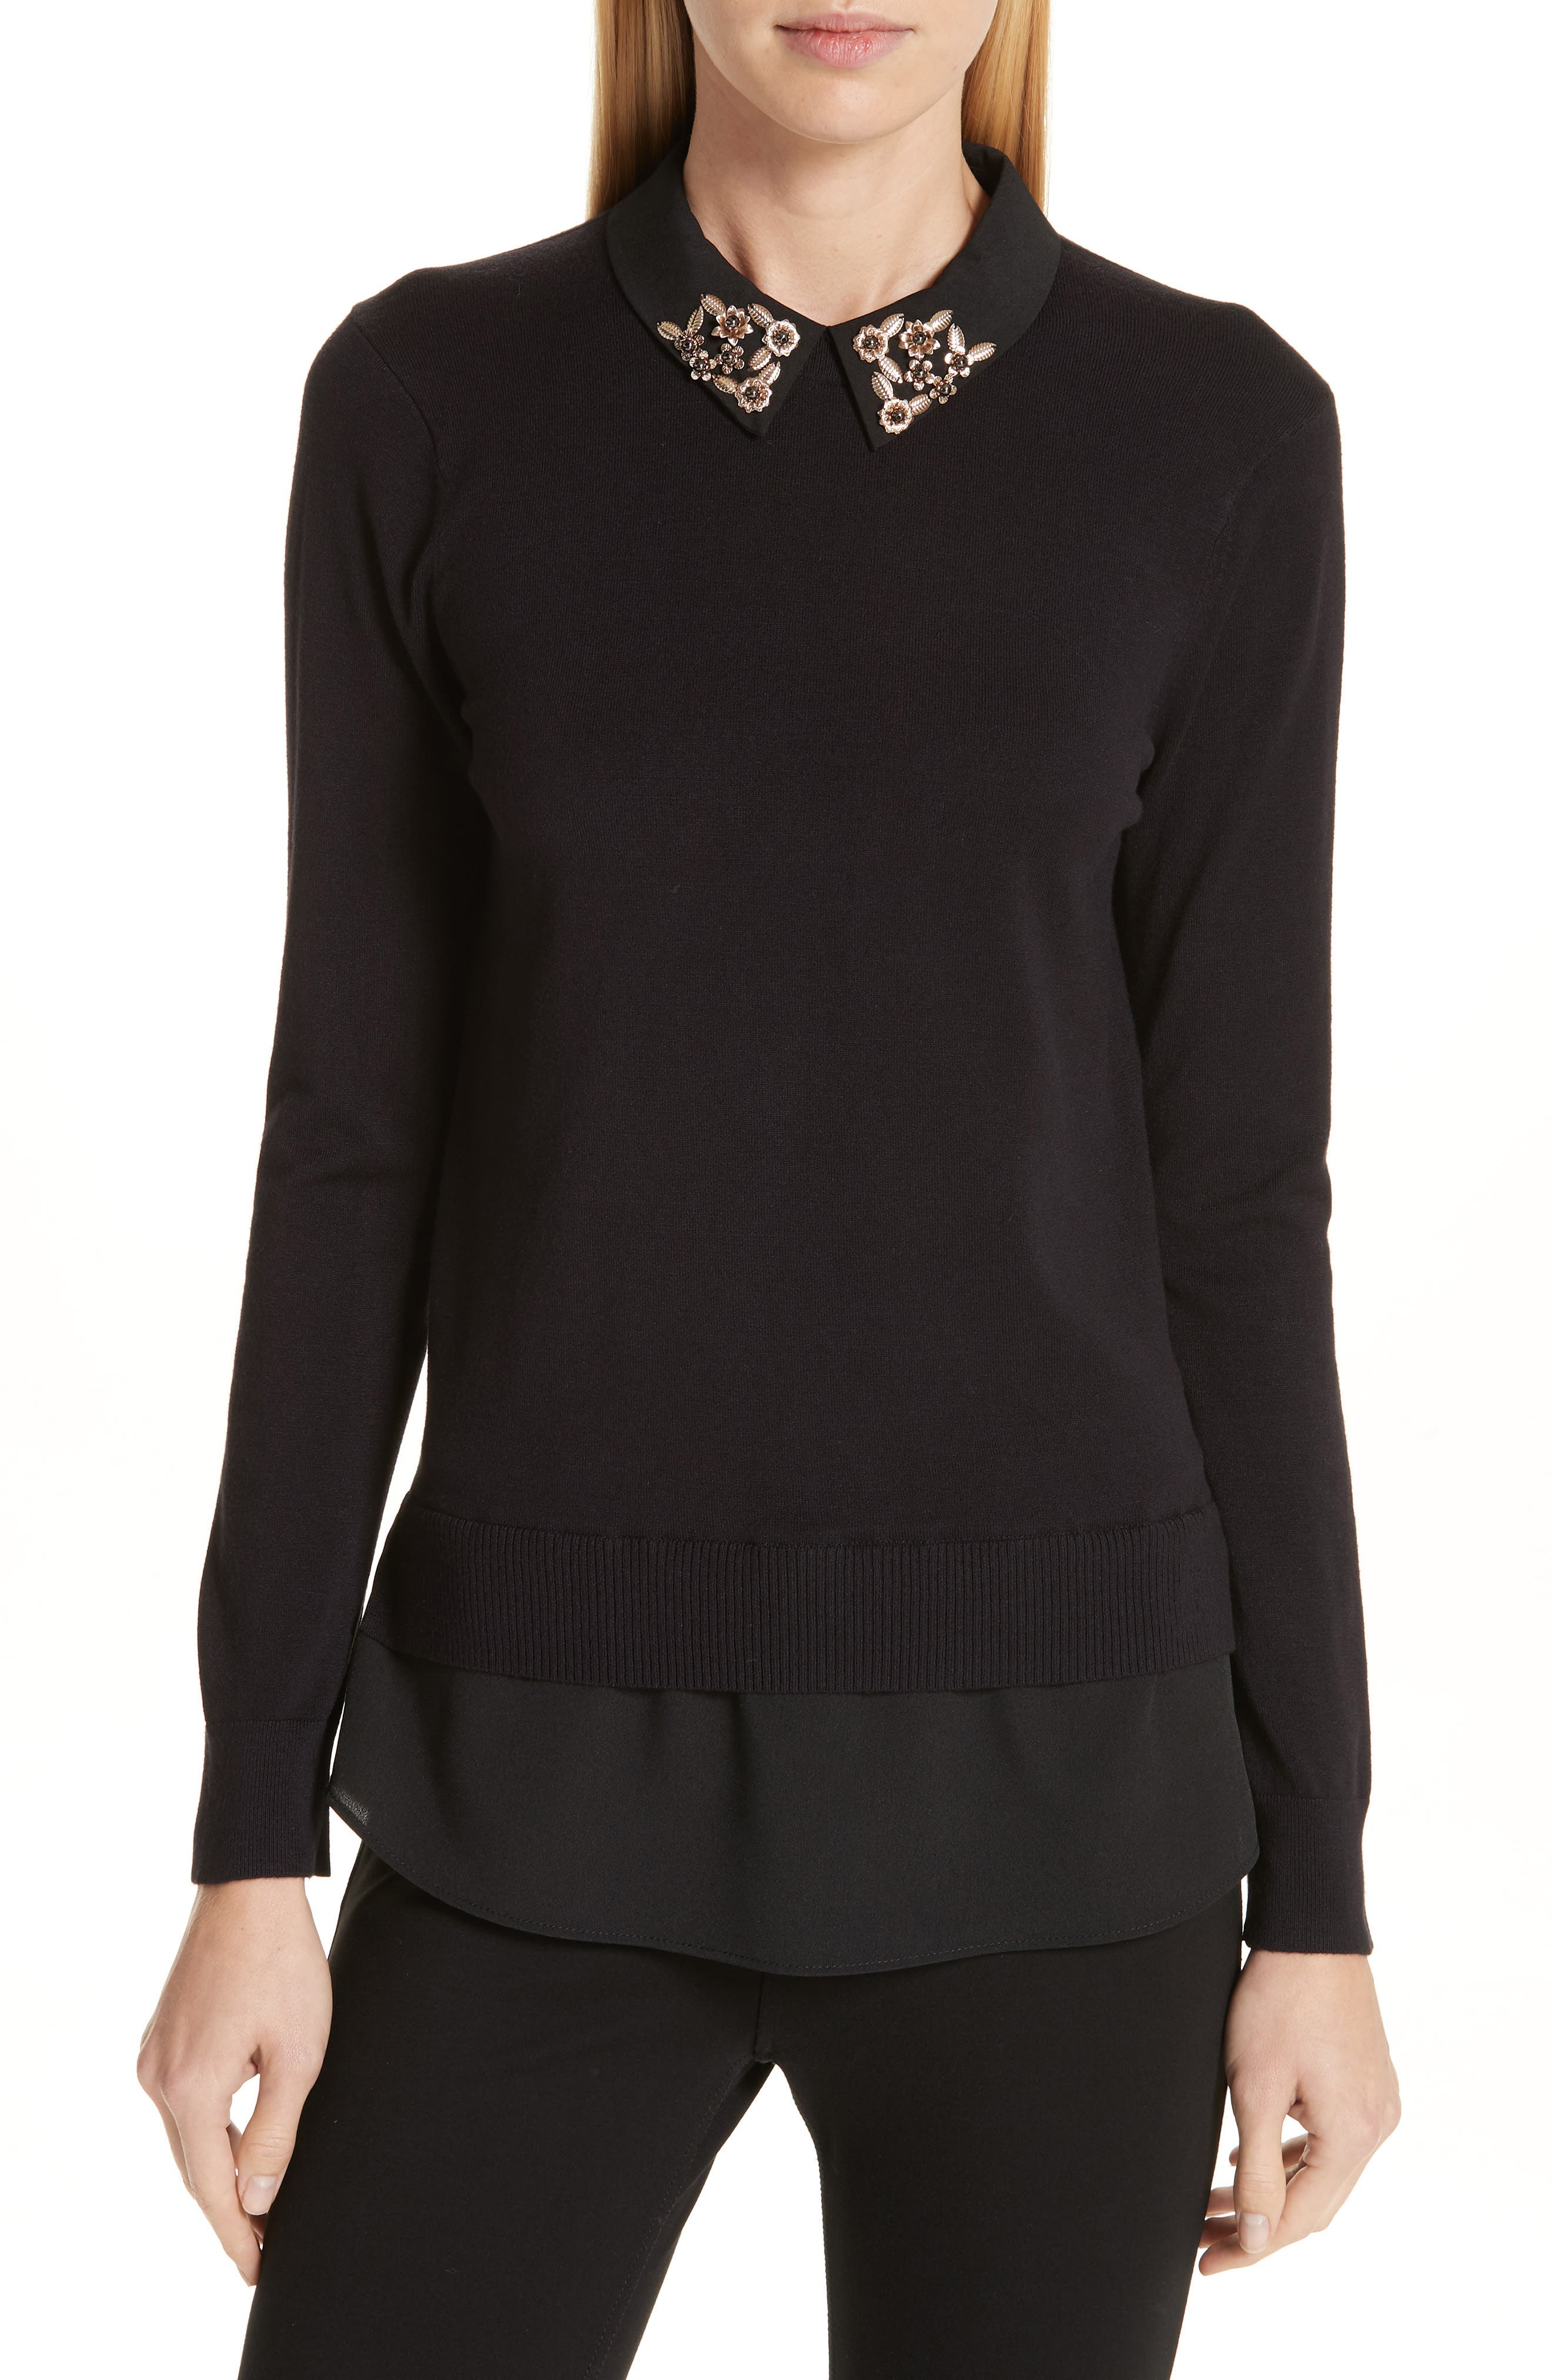 Moliiee Embroidered Collar Sweater,                         Main,                         color, BLACK